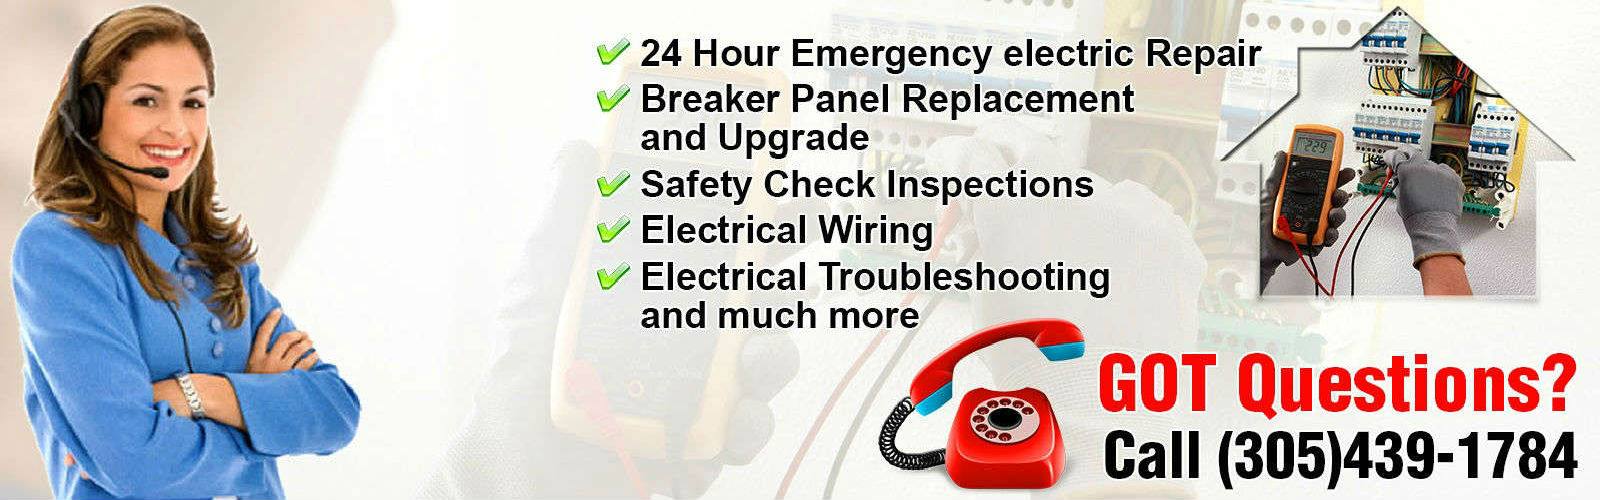 Residential Electrician in Miami